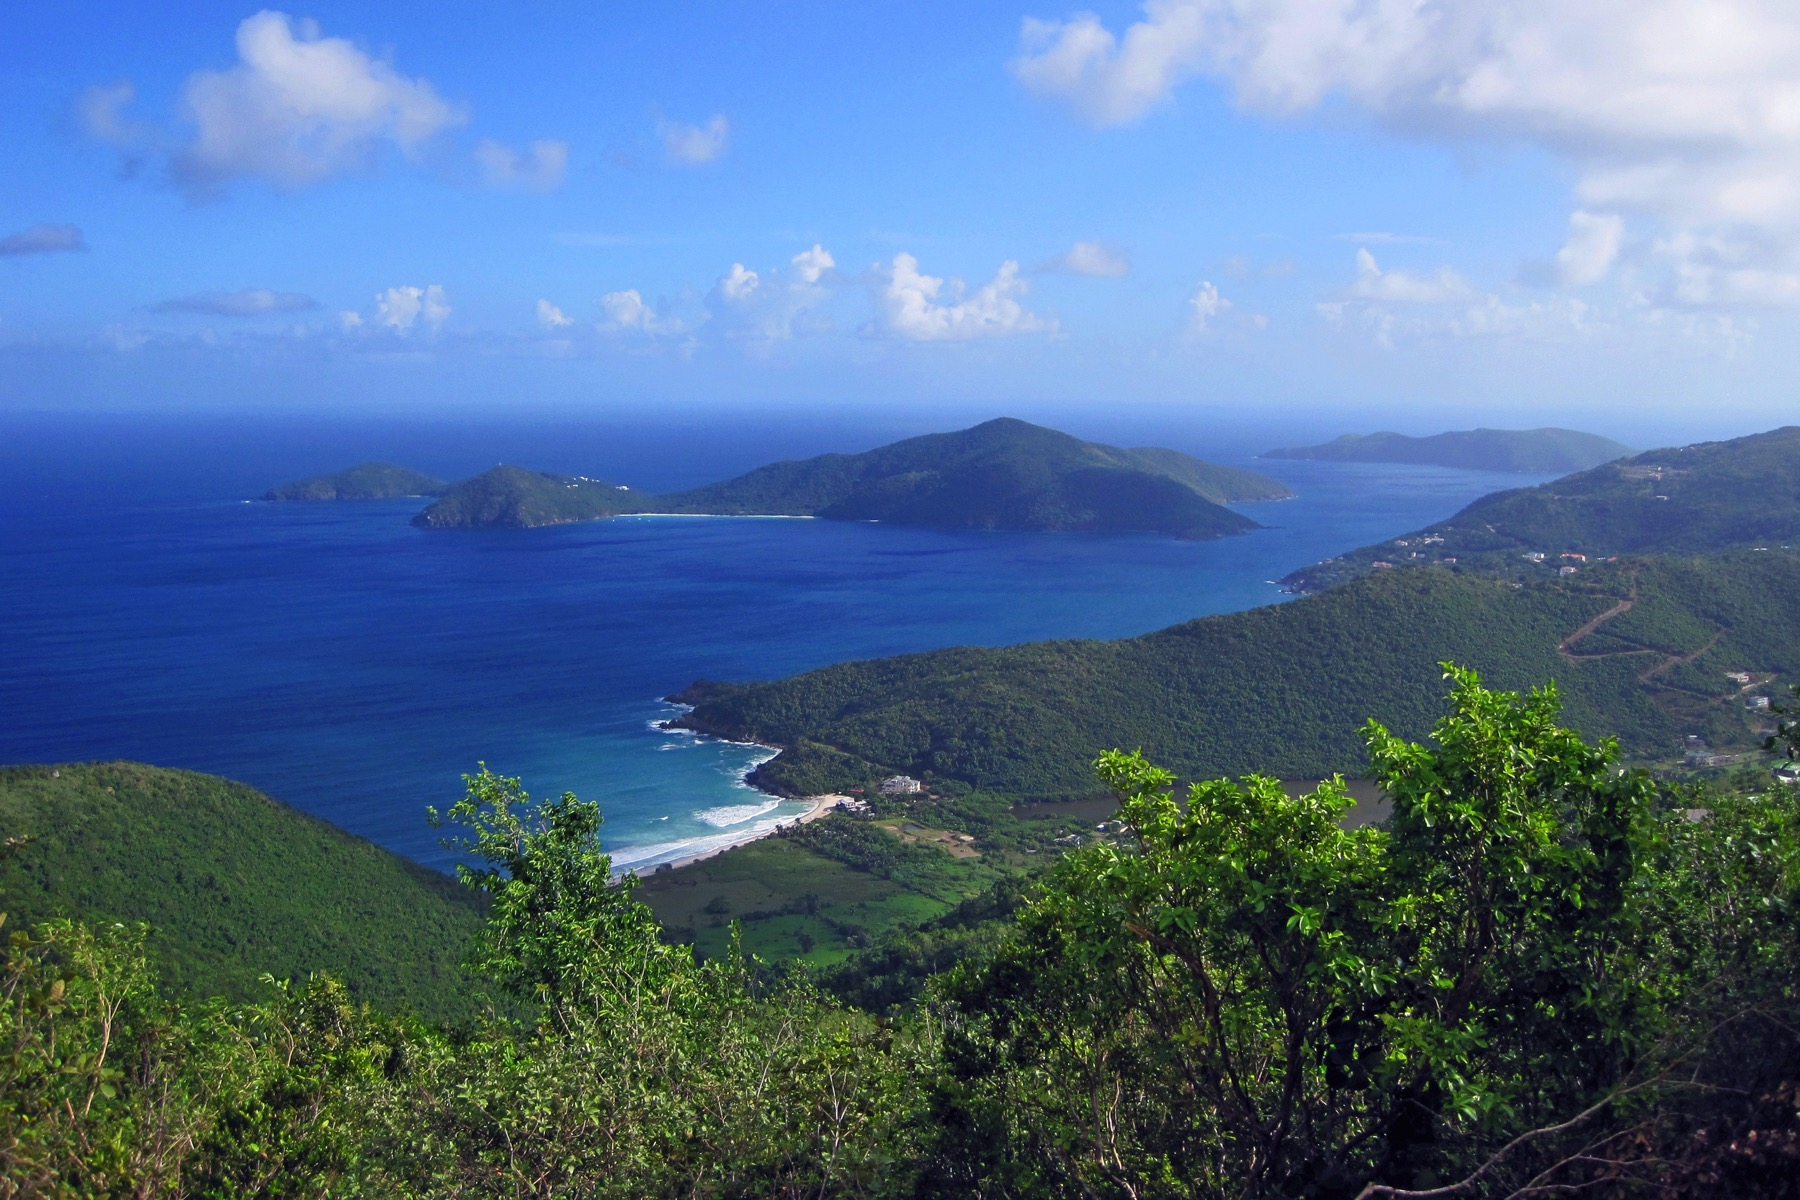 Terreno por un Venta en Hope Hill Land Hope Hill, Tortola Islas Vírgenes Británicas